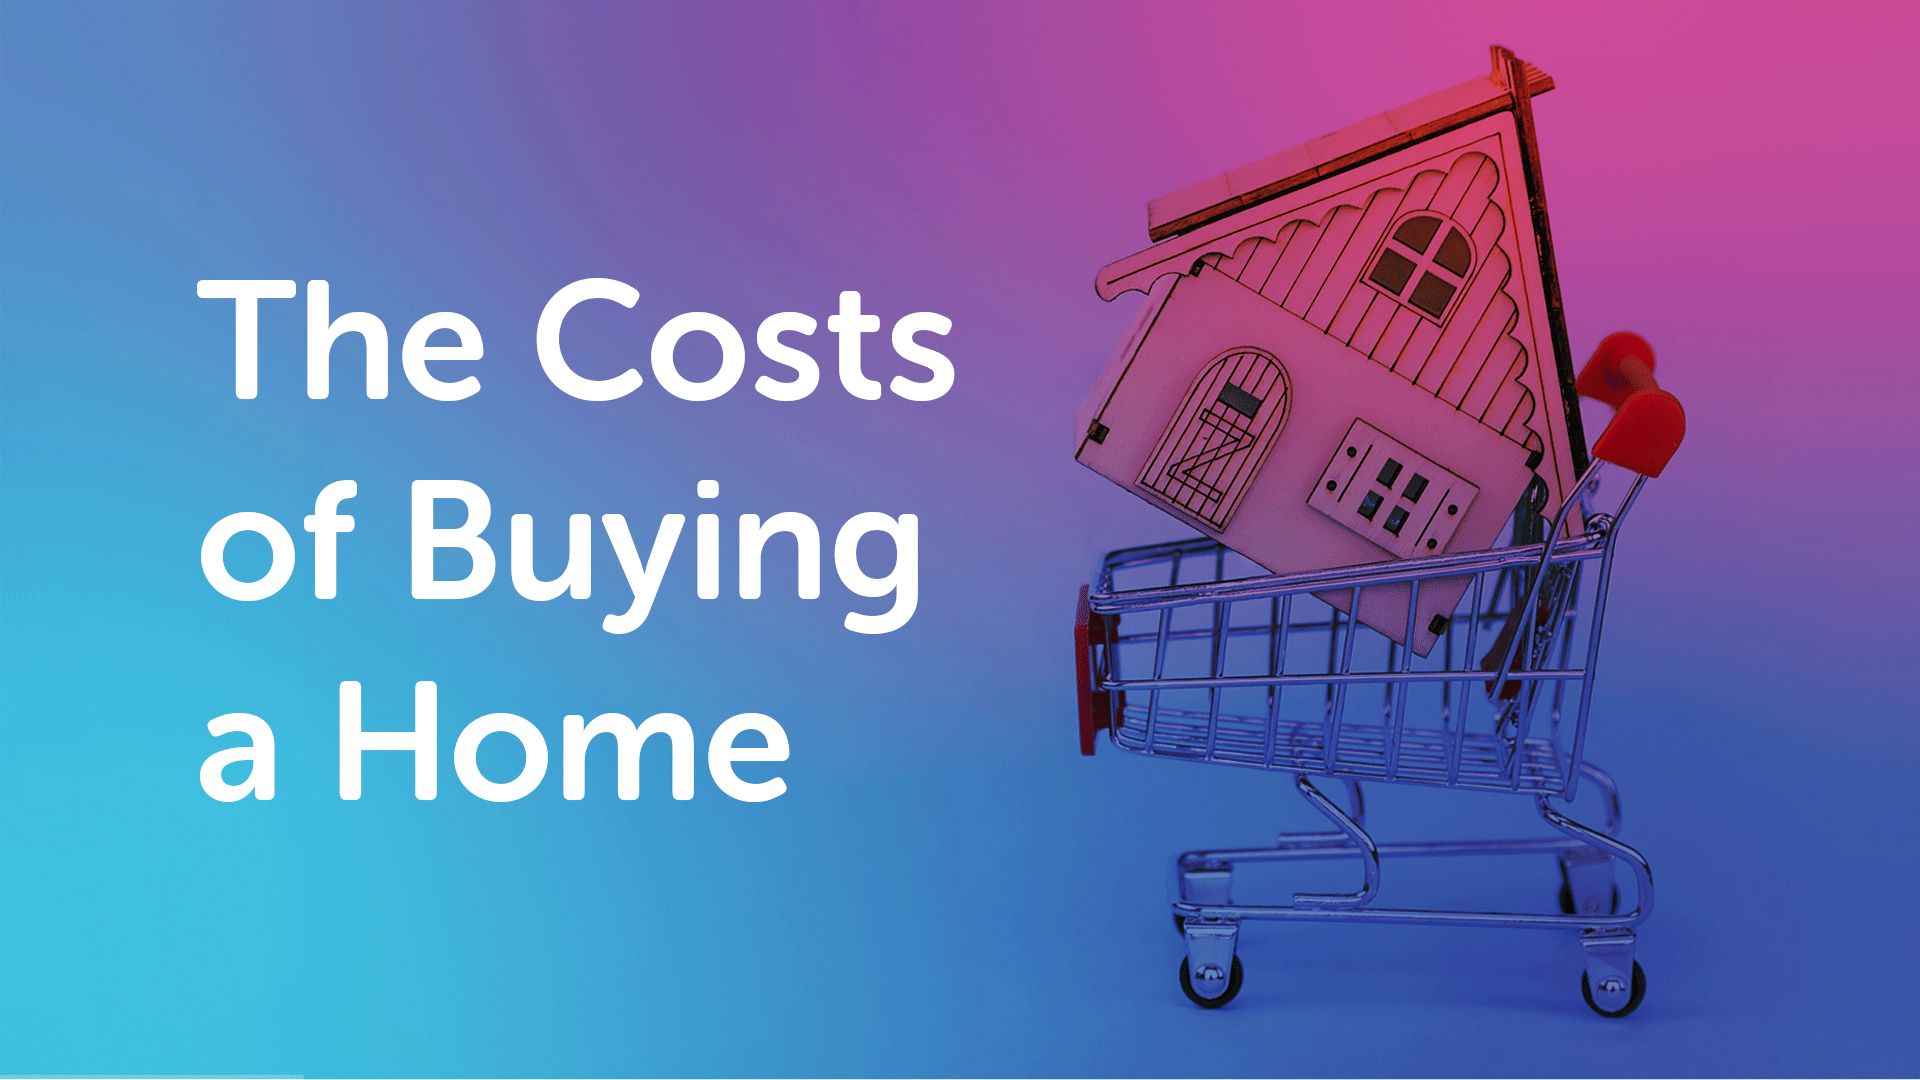 The Costs of Buying a Home & Moving